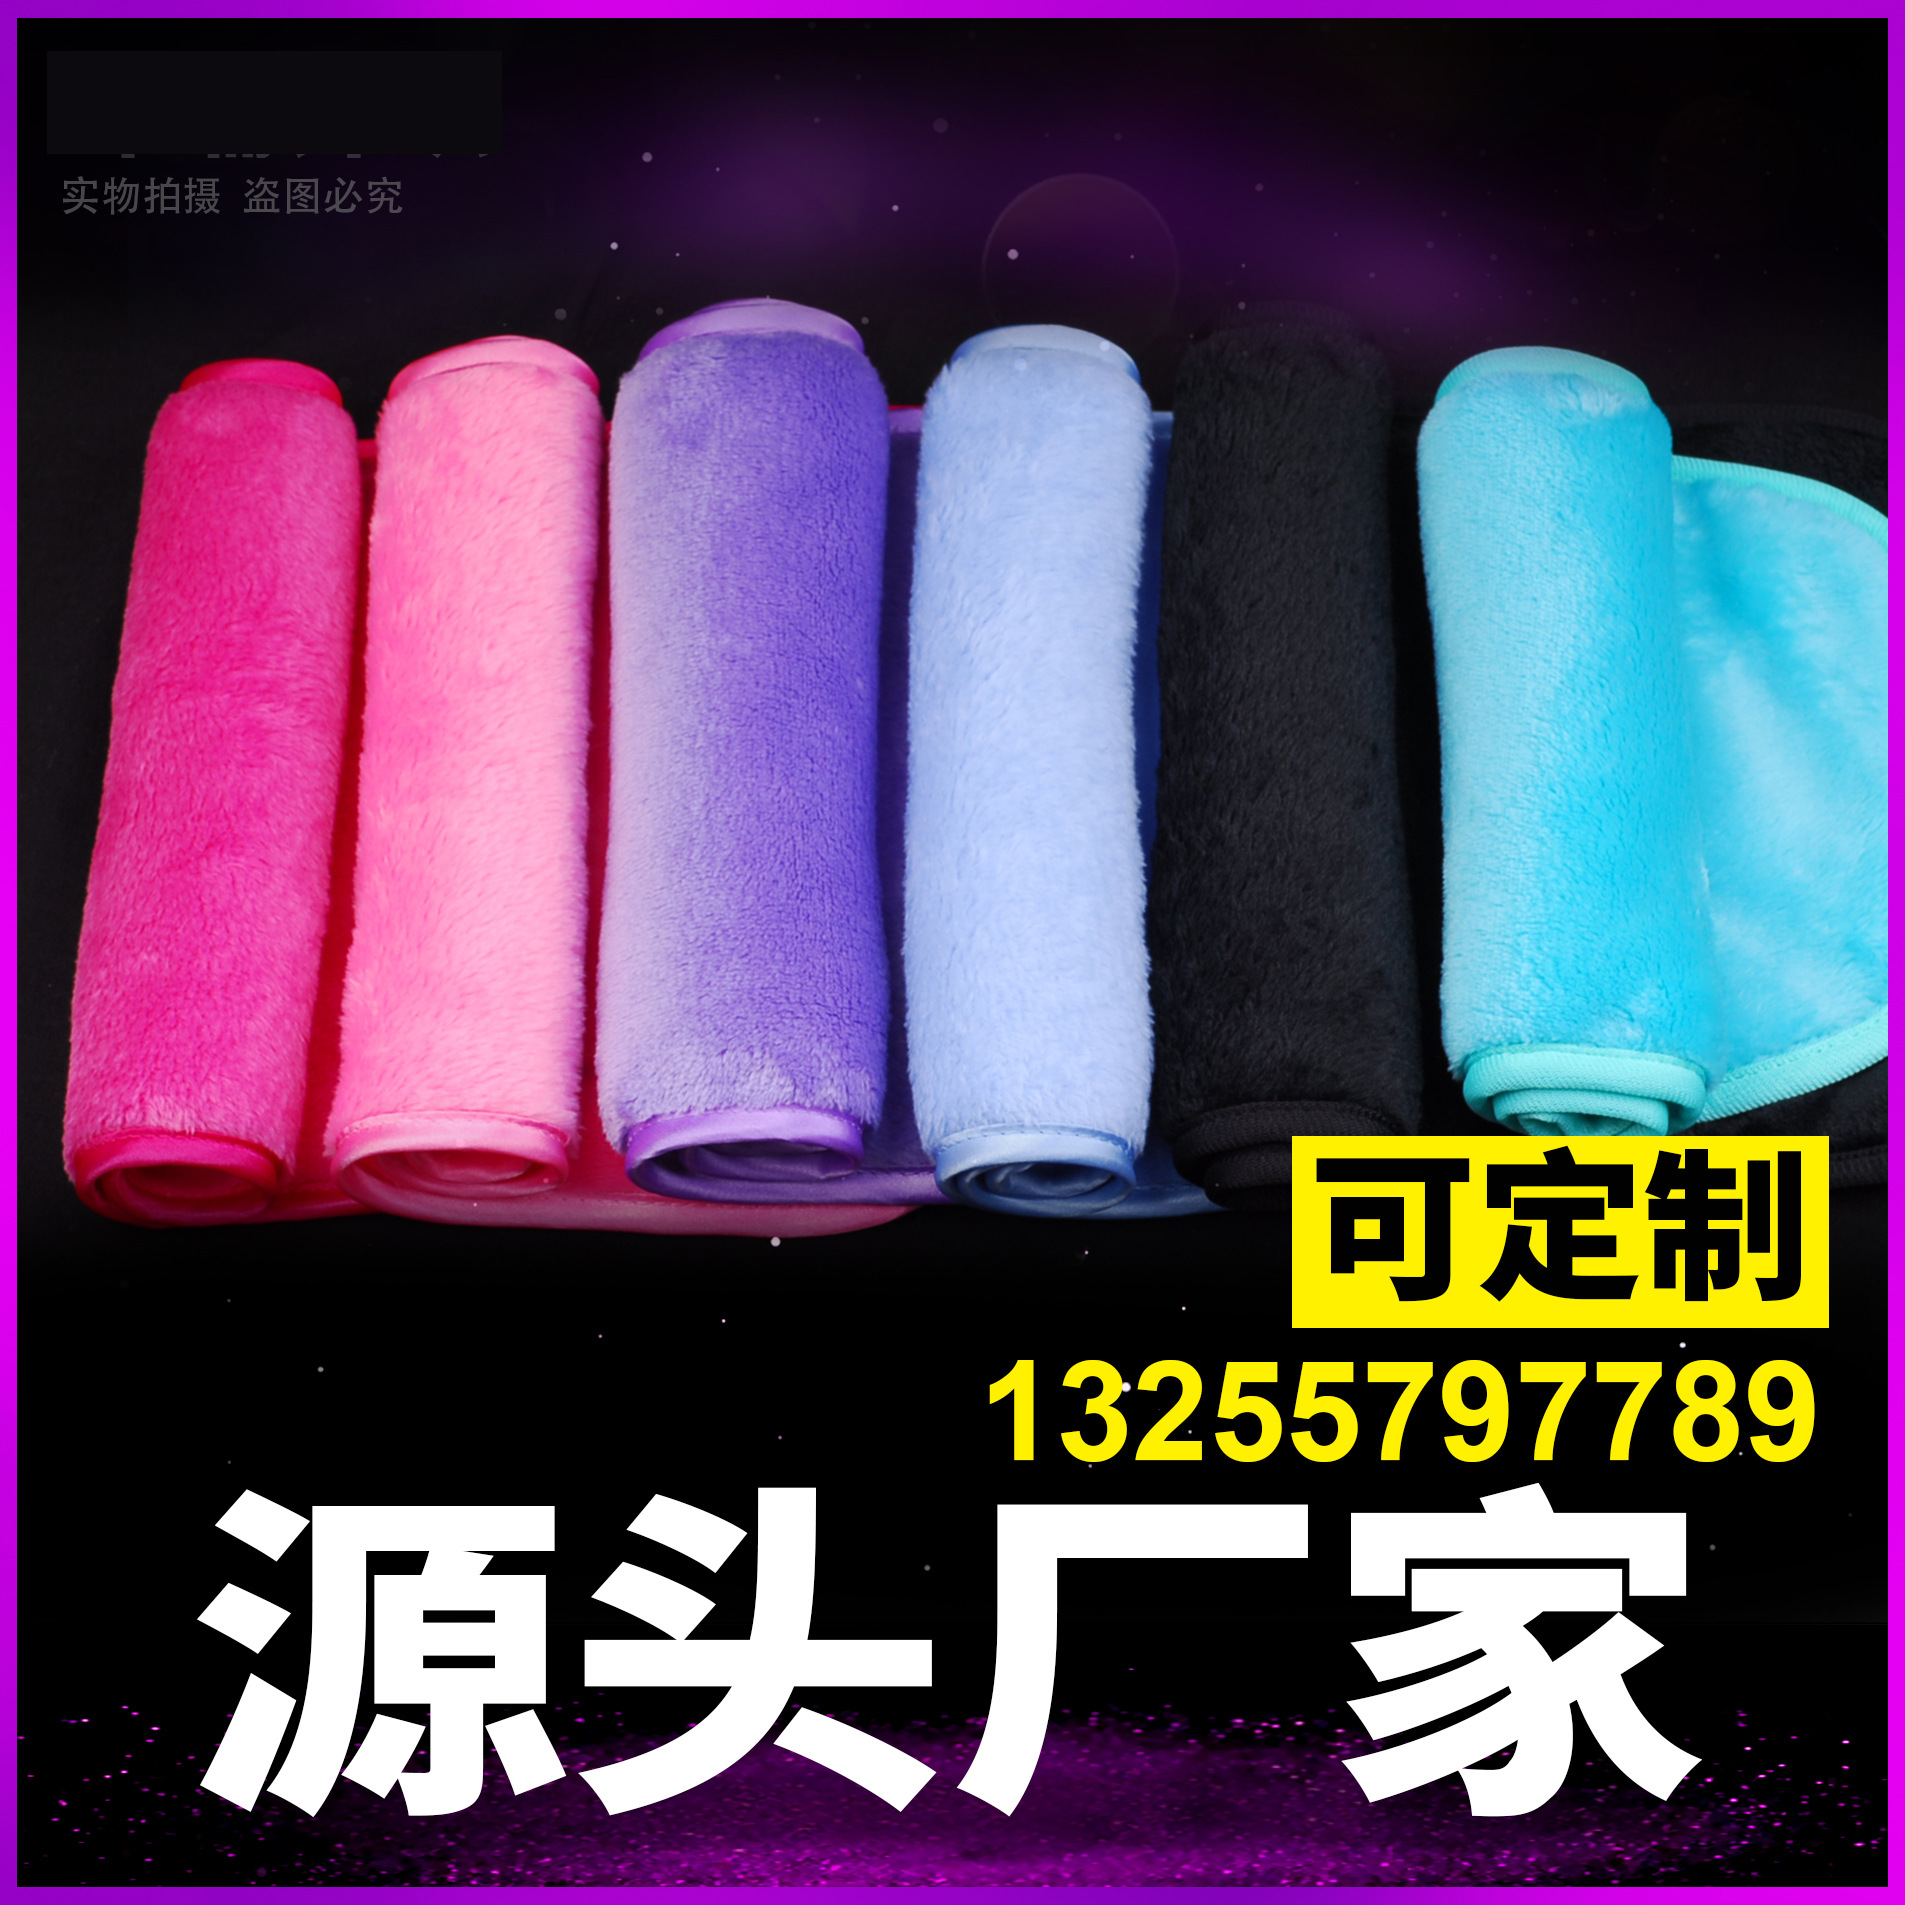 Lovely Makeup Spot Towel Remover for Aesthetic Makeup Finish